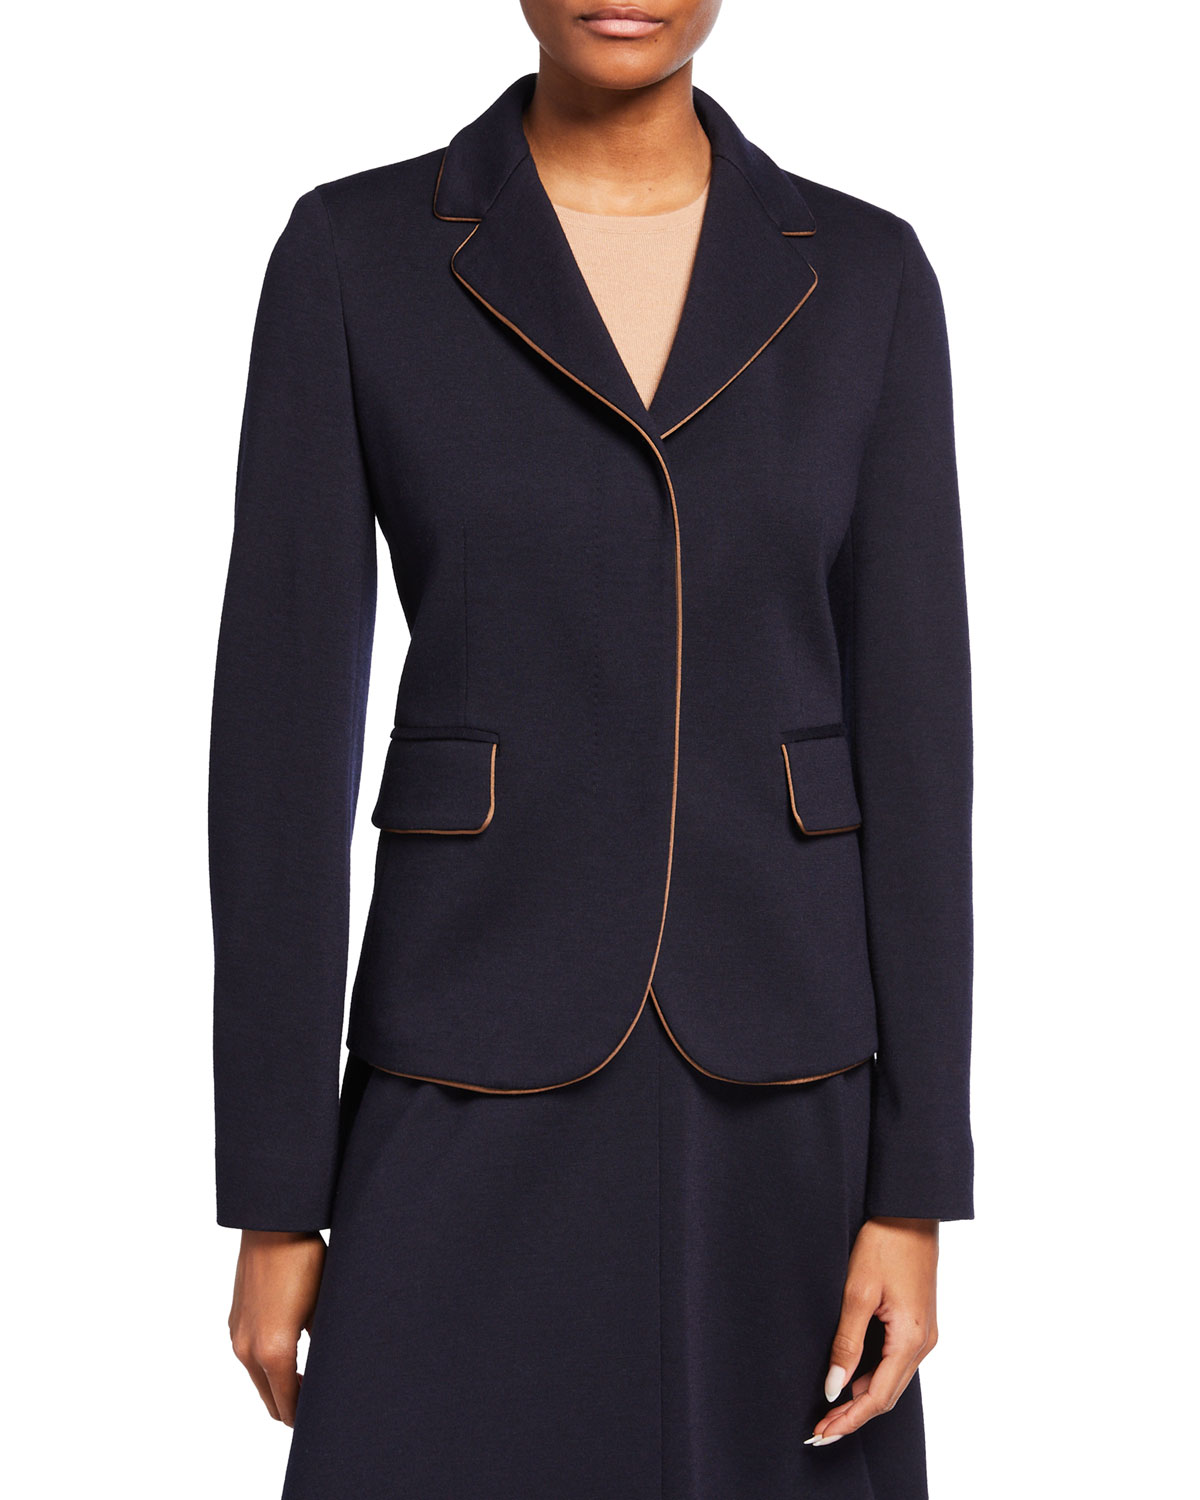 Pinide Wool Jersey Jacket w/ Contrast Piping